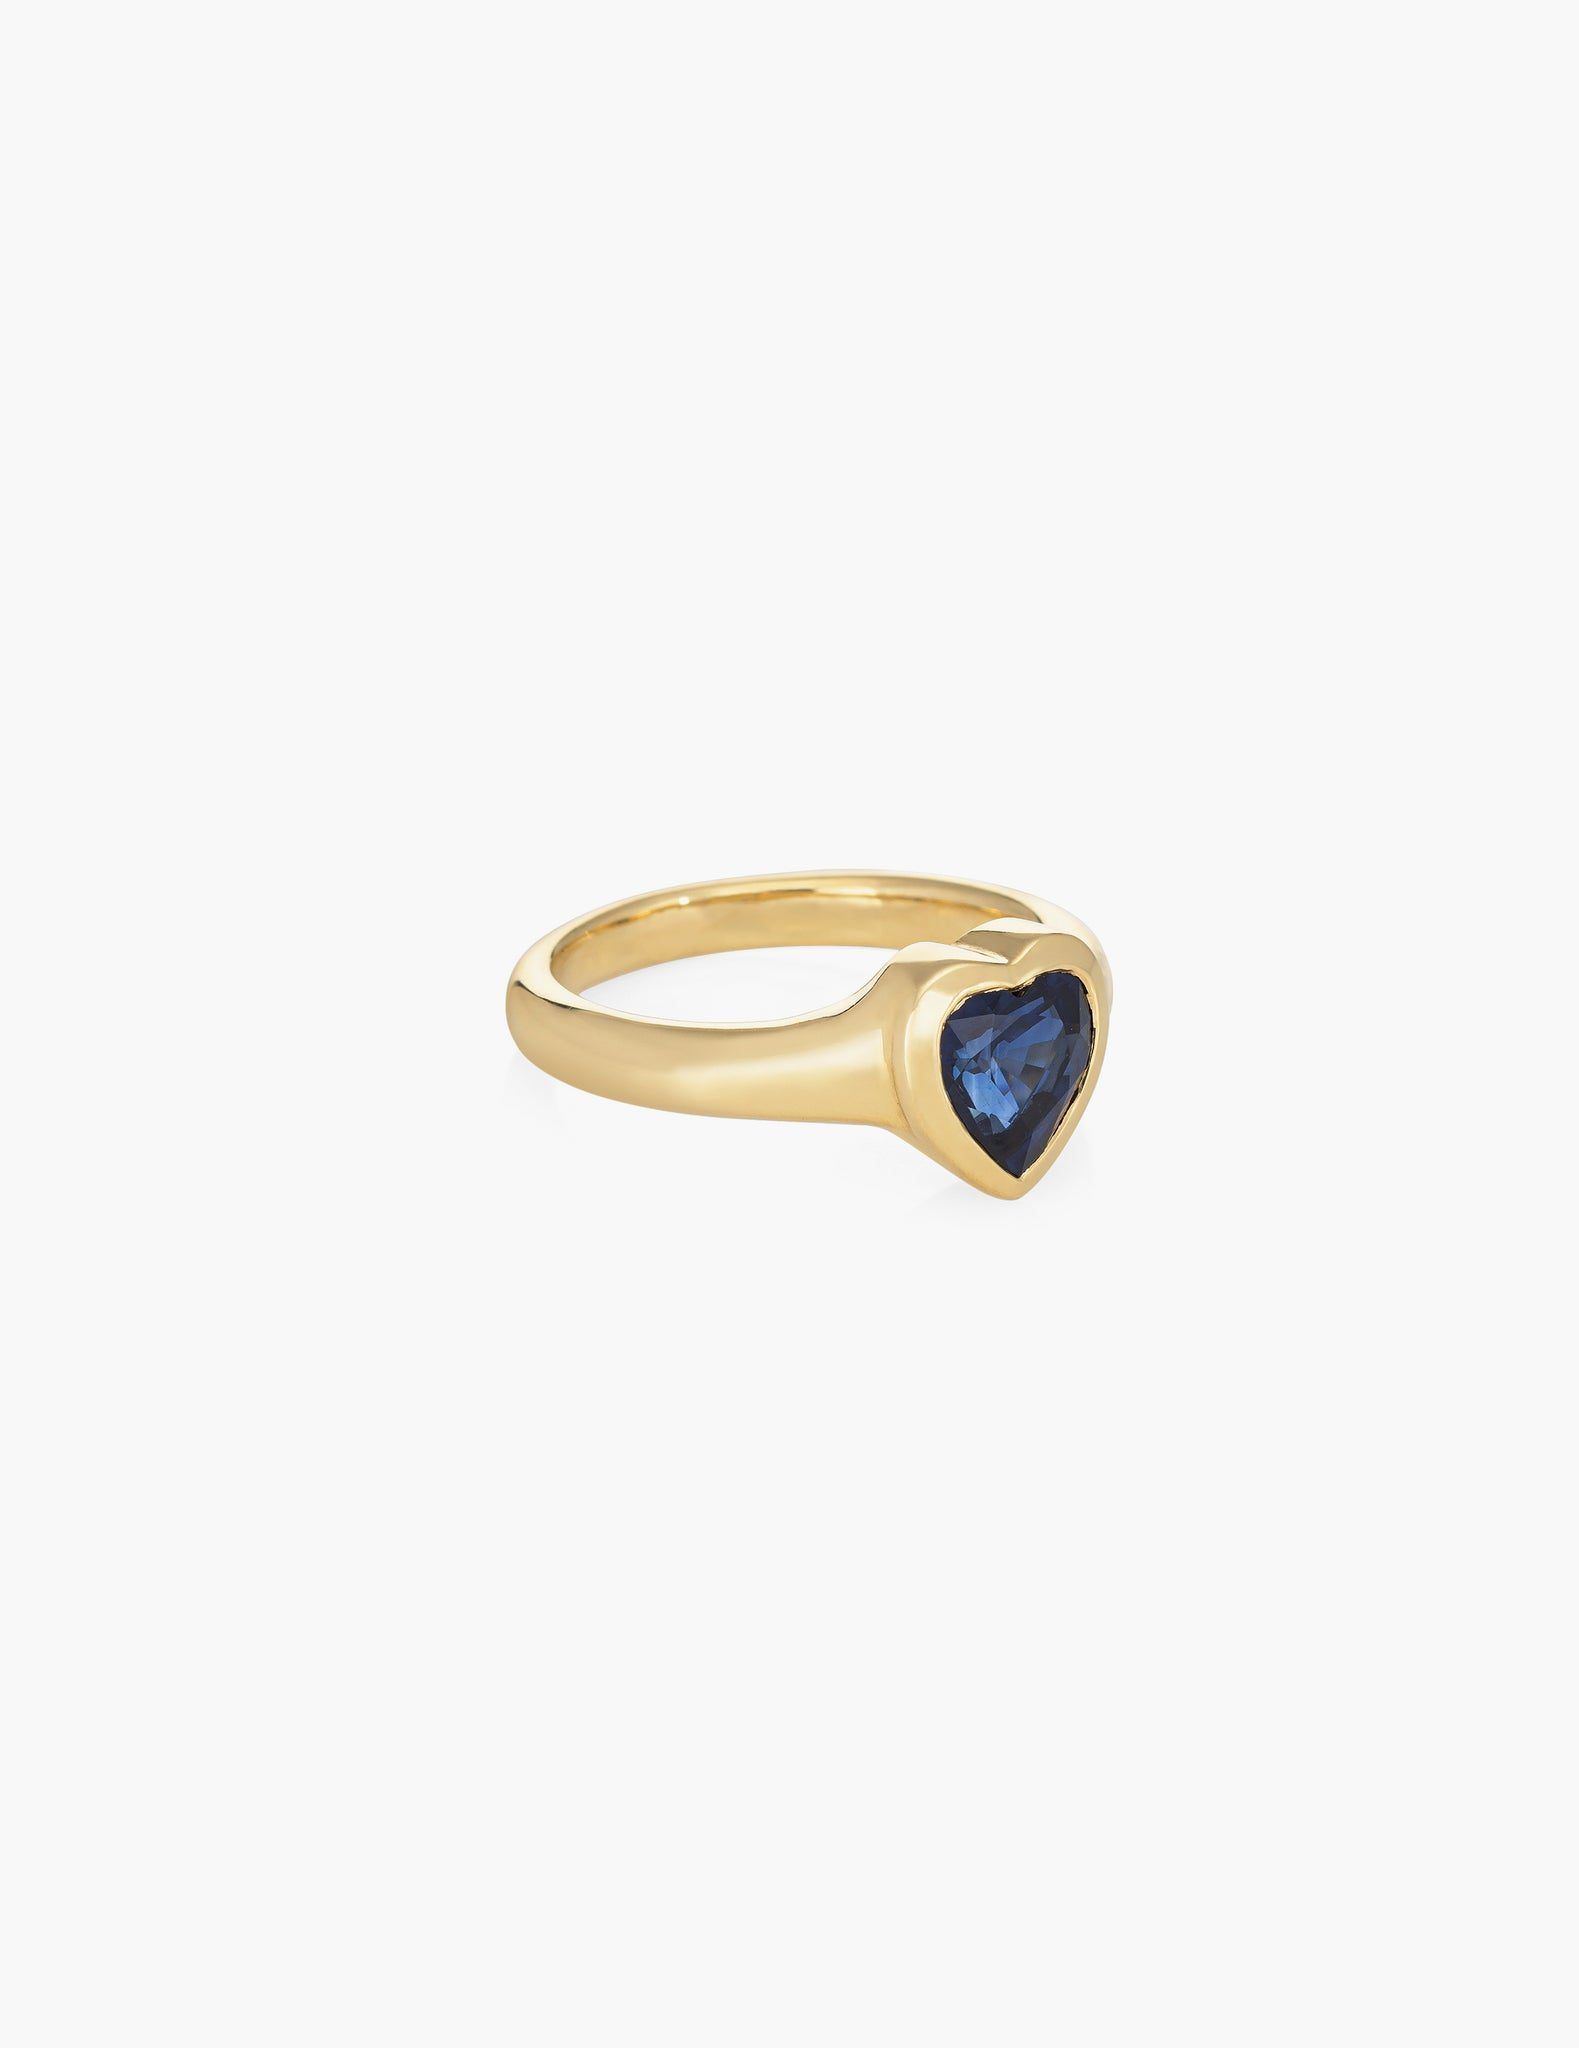 Large blue sapphire heart ring